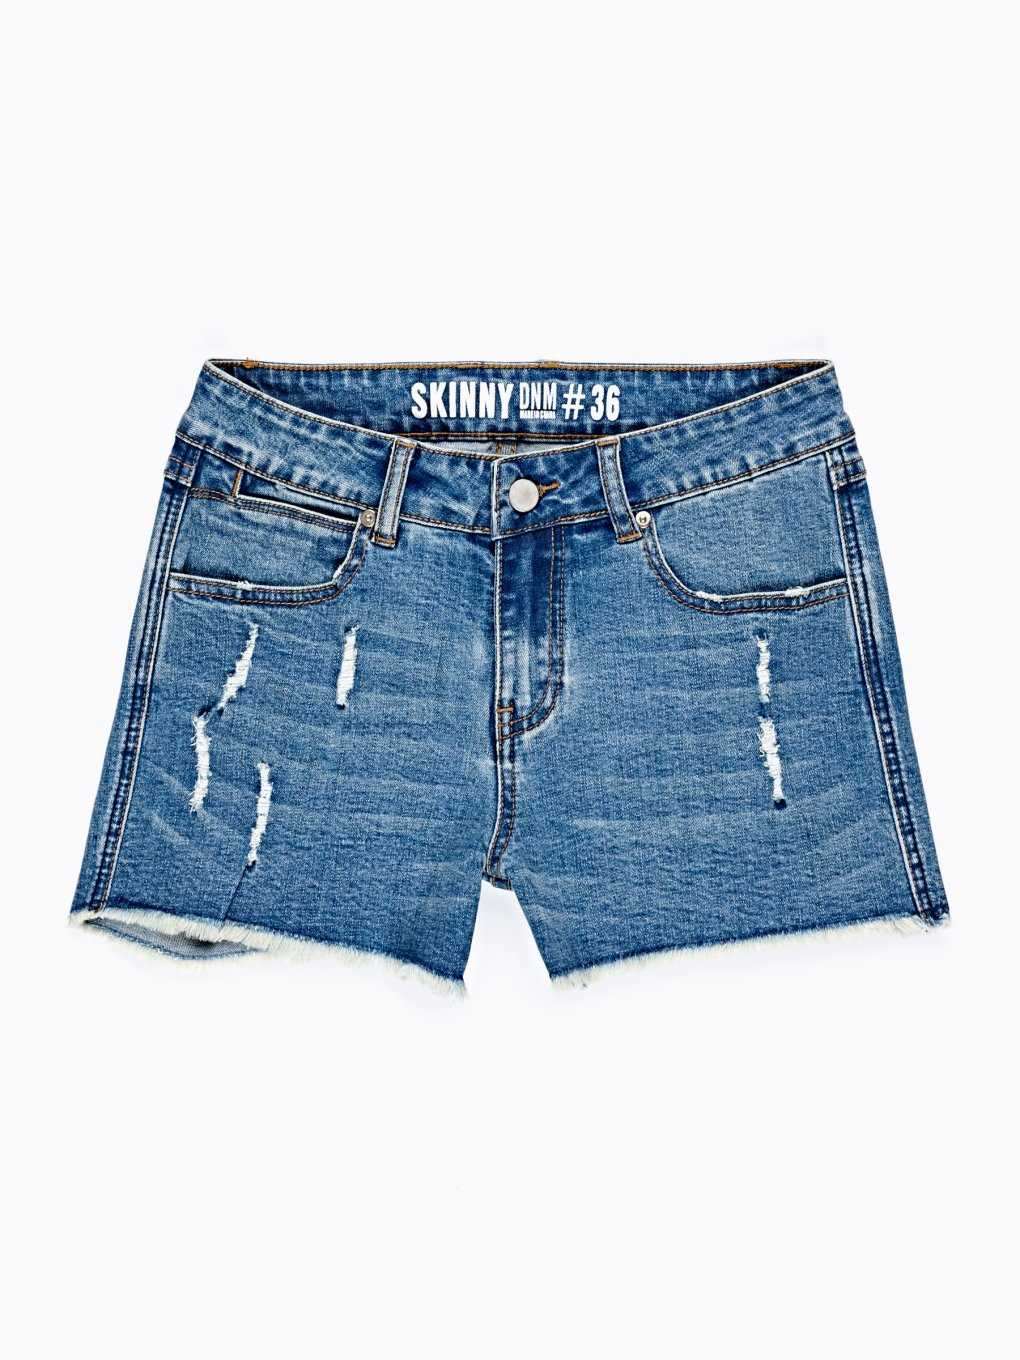 DAMAGED SKINNY SHORTS IN MID BLUE WASH